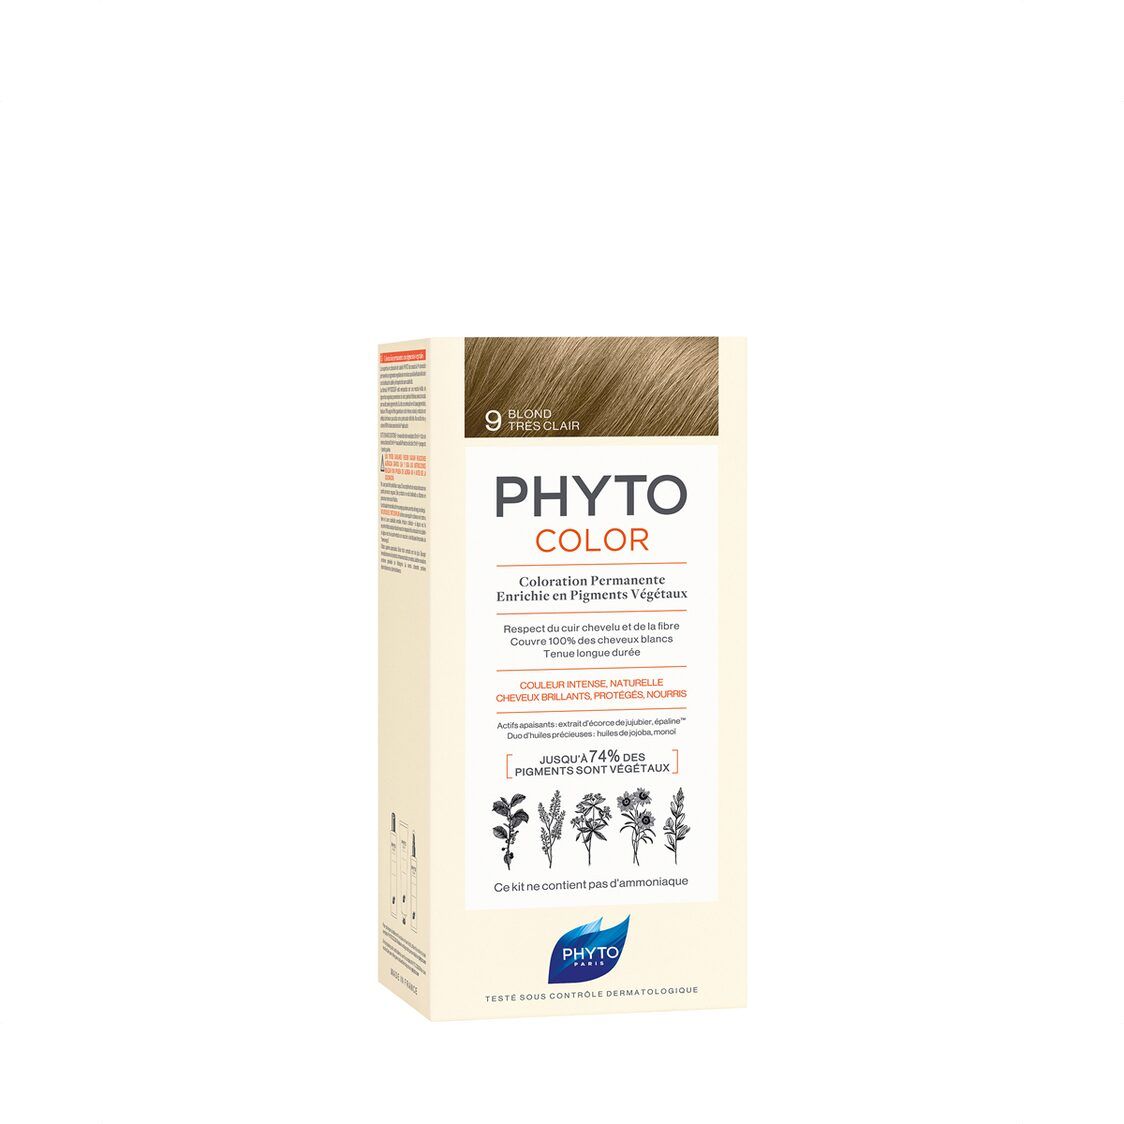 Phytocolor 9 Very Light Blond Col Cr 50ml  Lot 50ml PH10015A99926